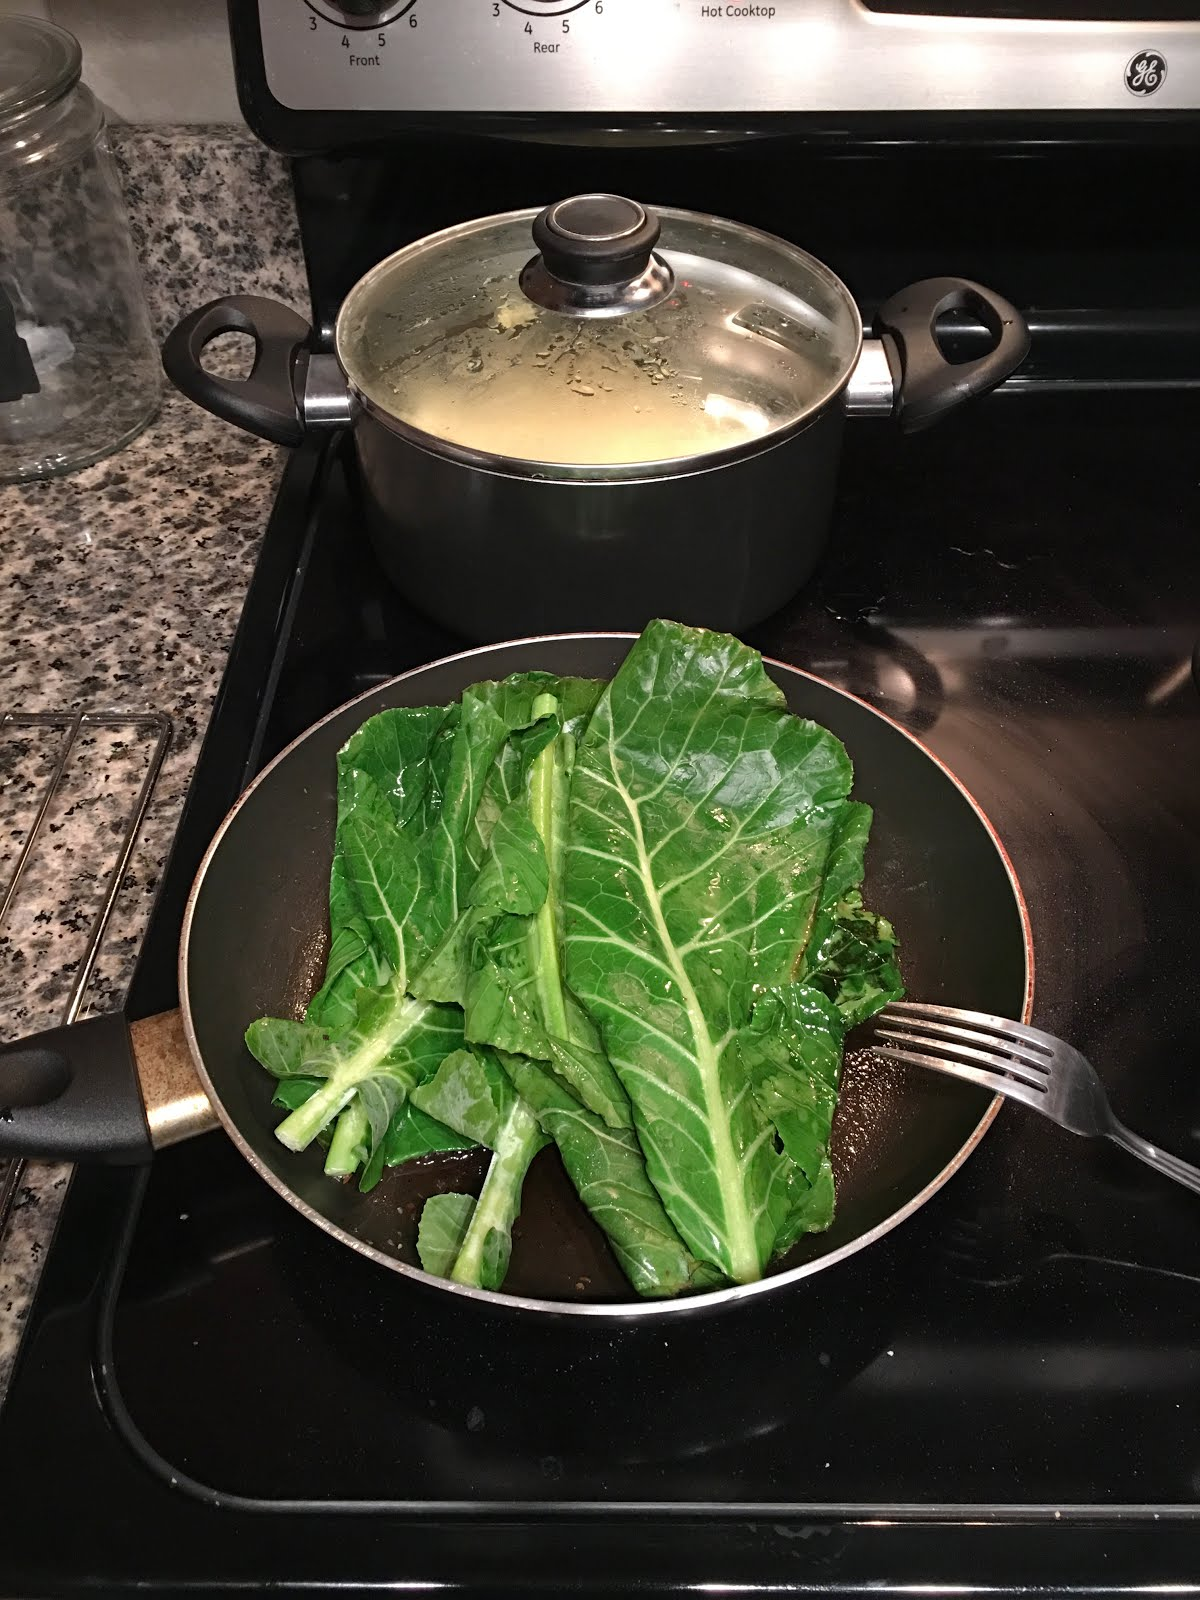 Blue apron yellow grits - After That I Saut Ed The Collard Greens In Olive Oil With Minced Fresh Garlic Some Sea Salt And Black Pepper